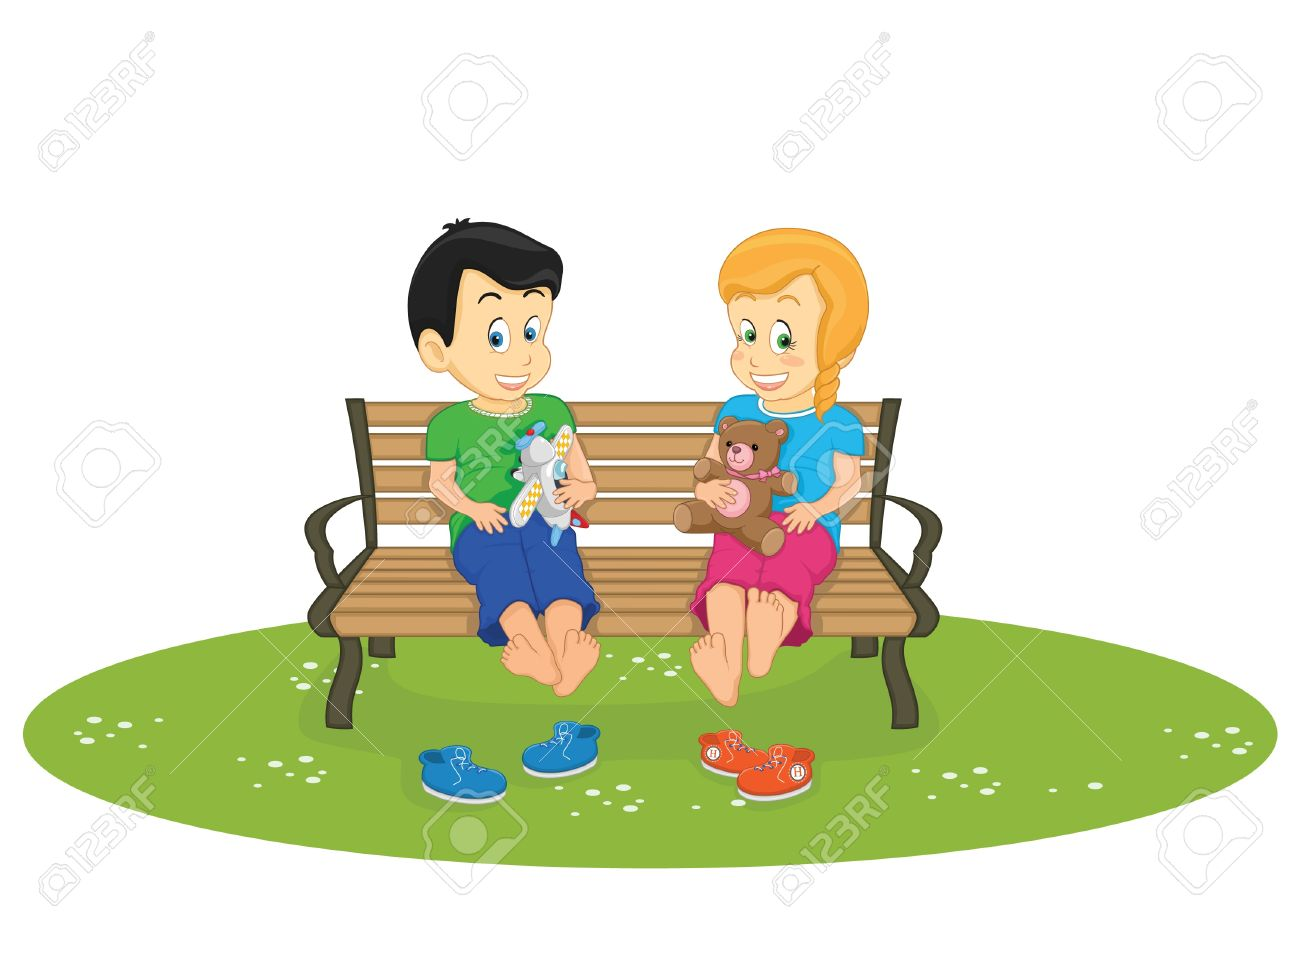 Park Bence clipart school bench #11